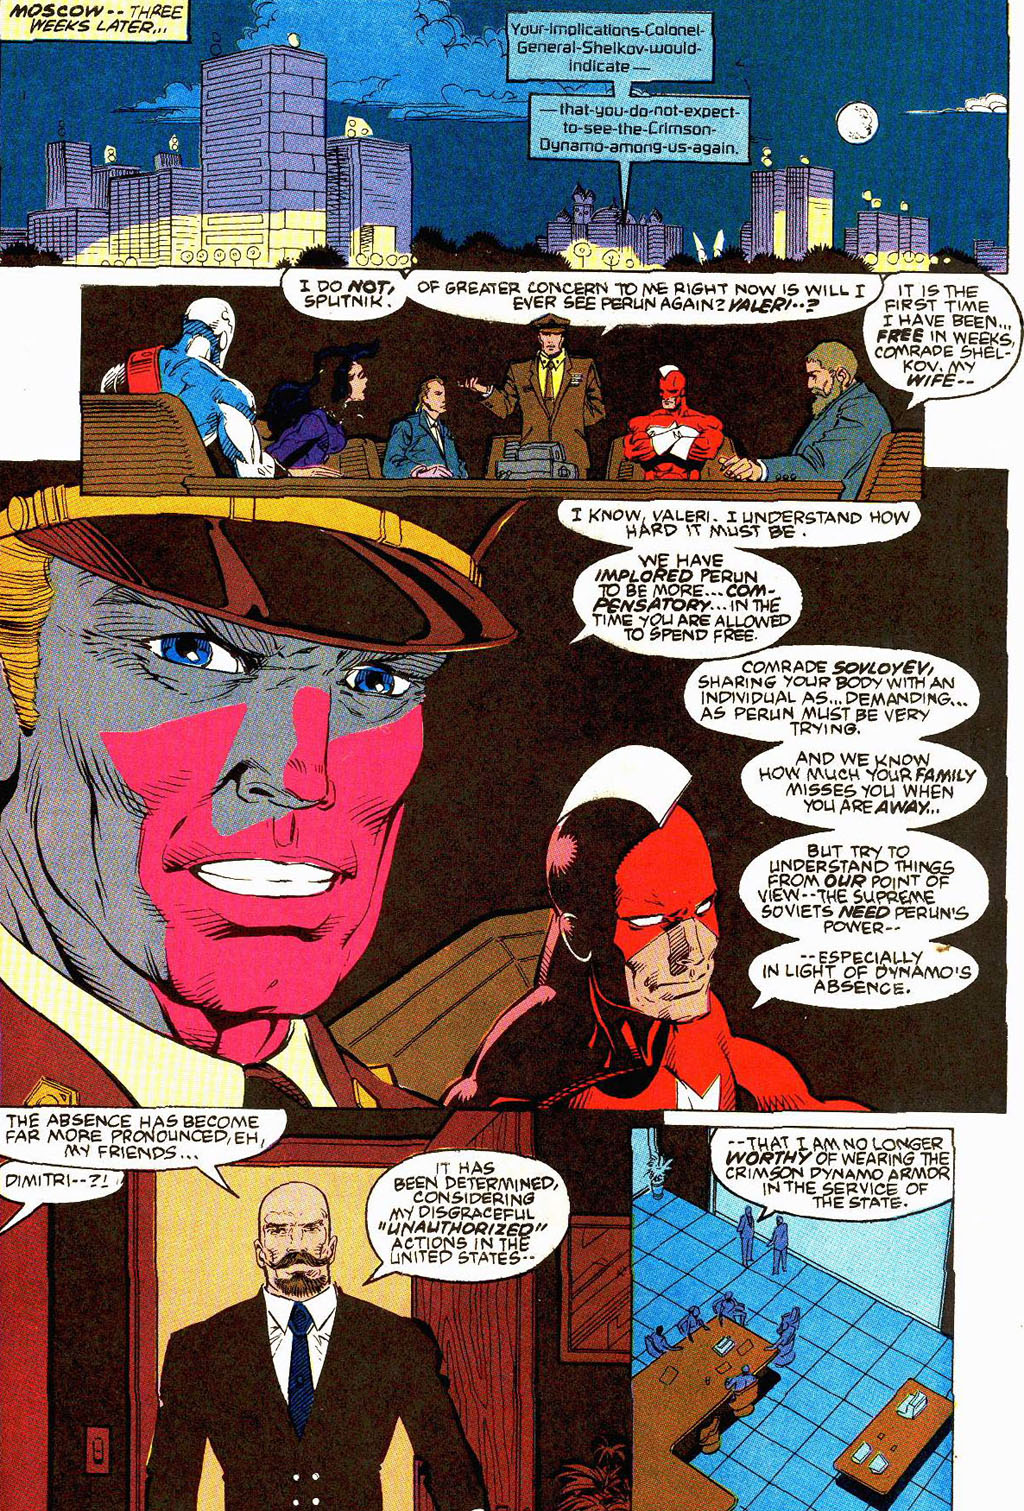 Read online Soviet Super Soldiers comic -  Issue # Full - 56